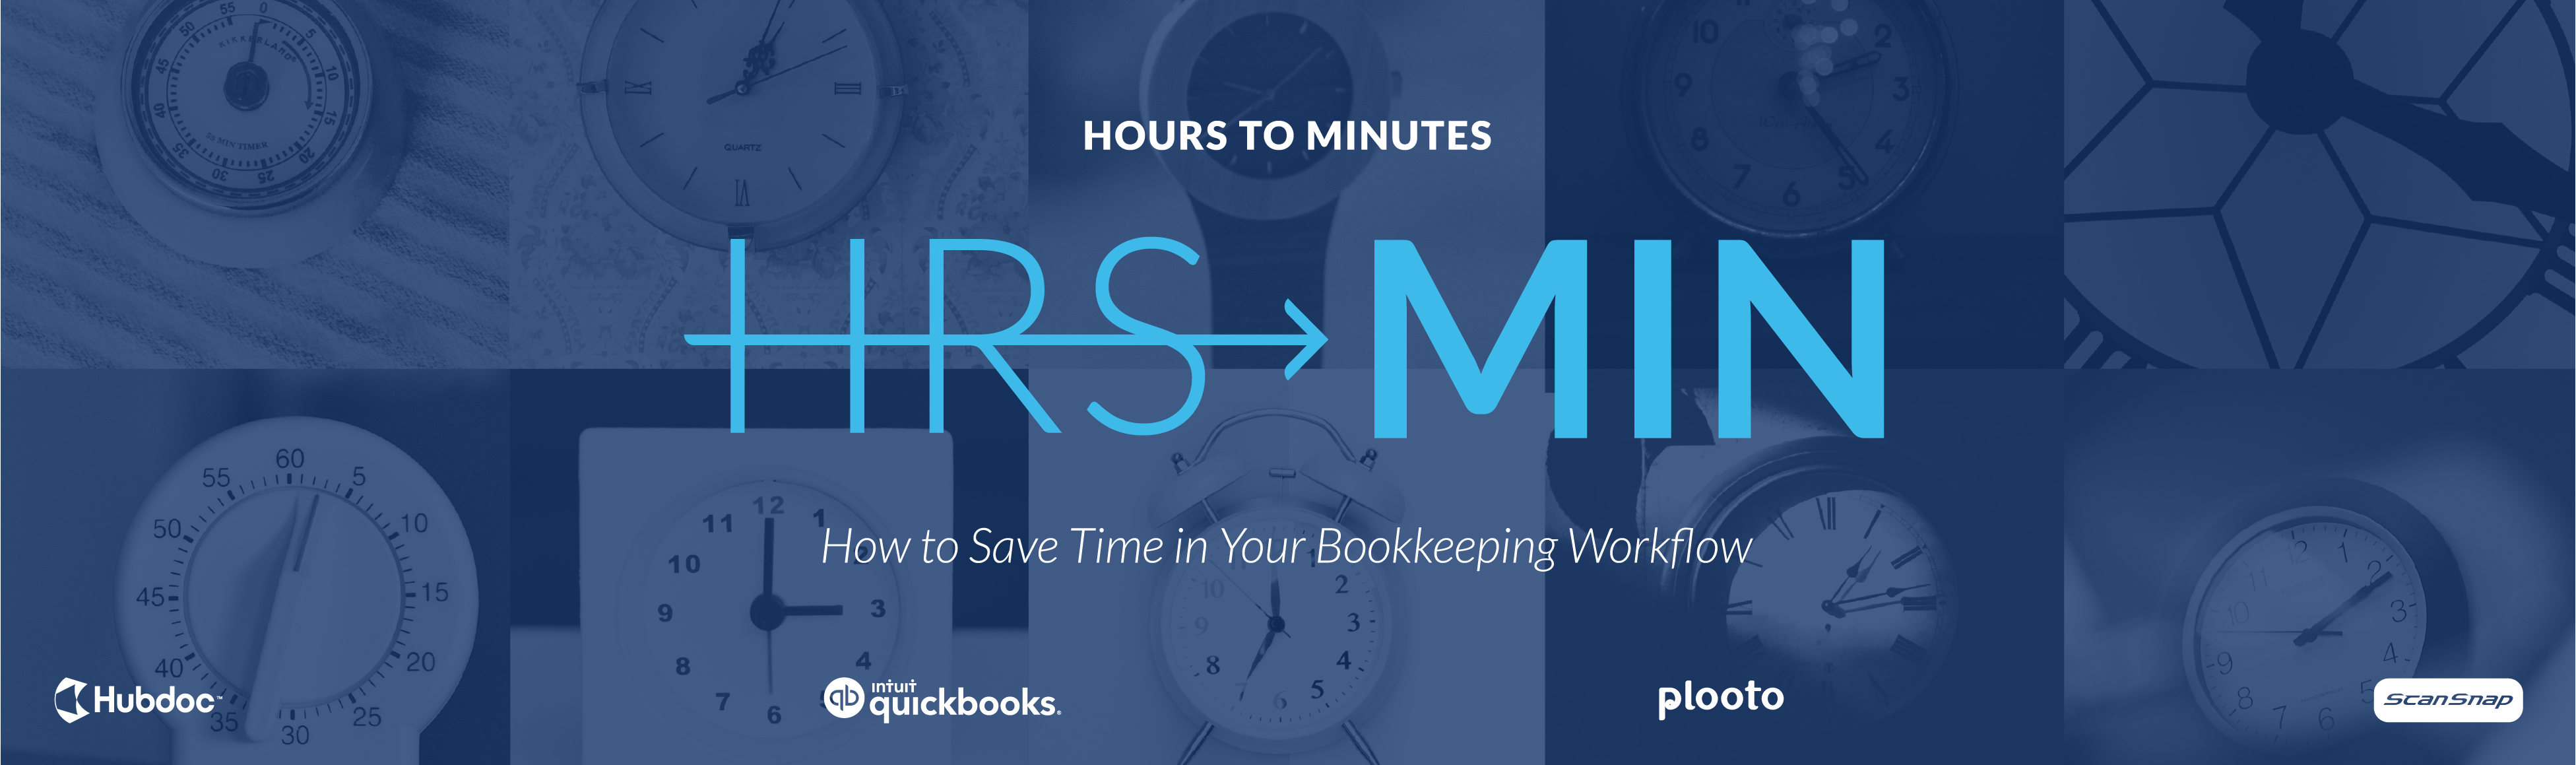 Hours to Minutes: How to Save Time in Your Bookkeeping Workflow